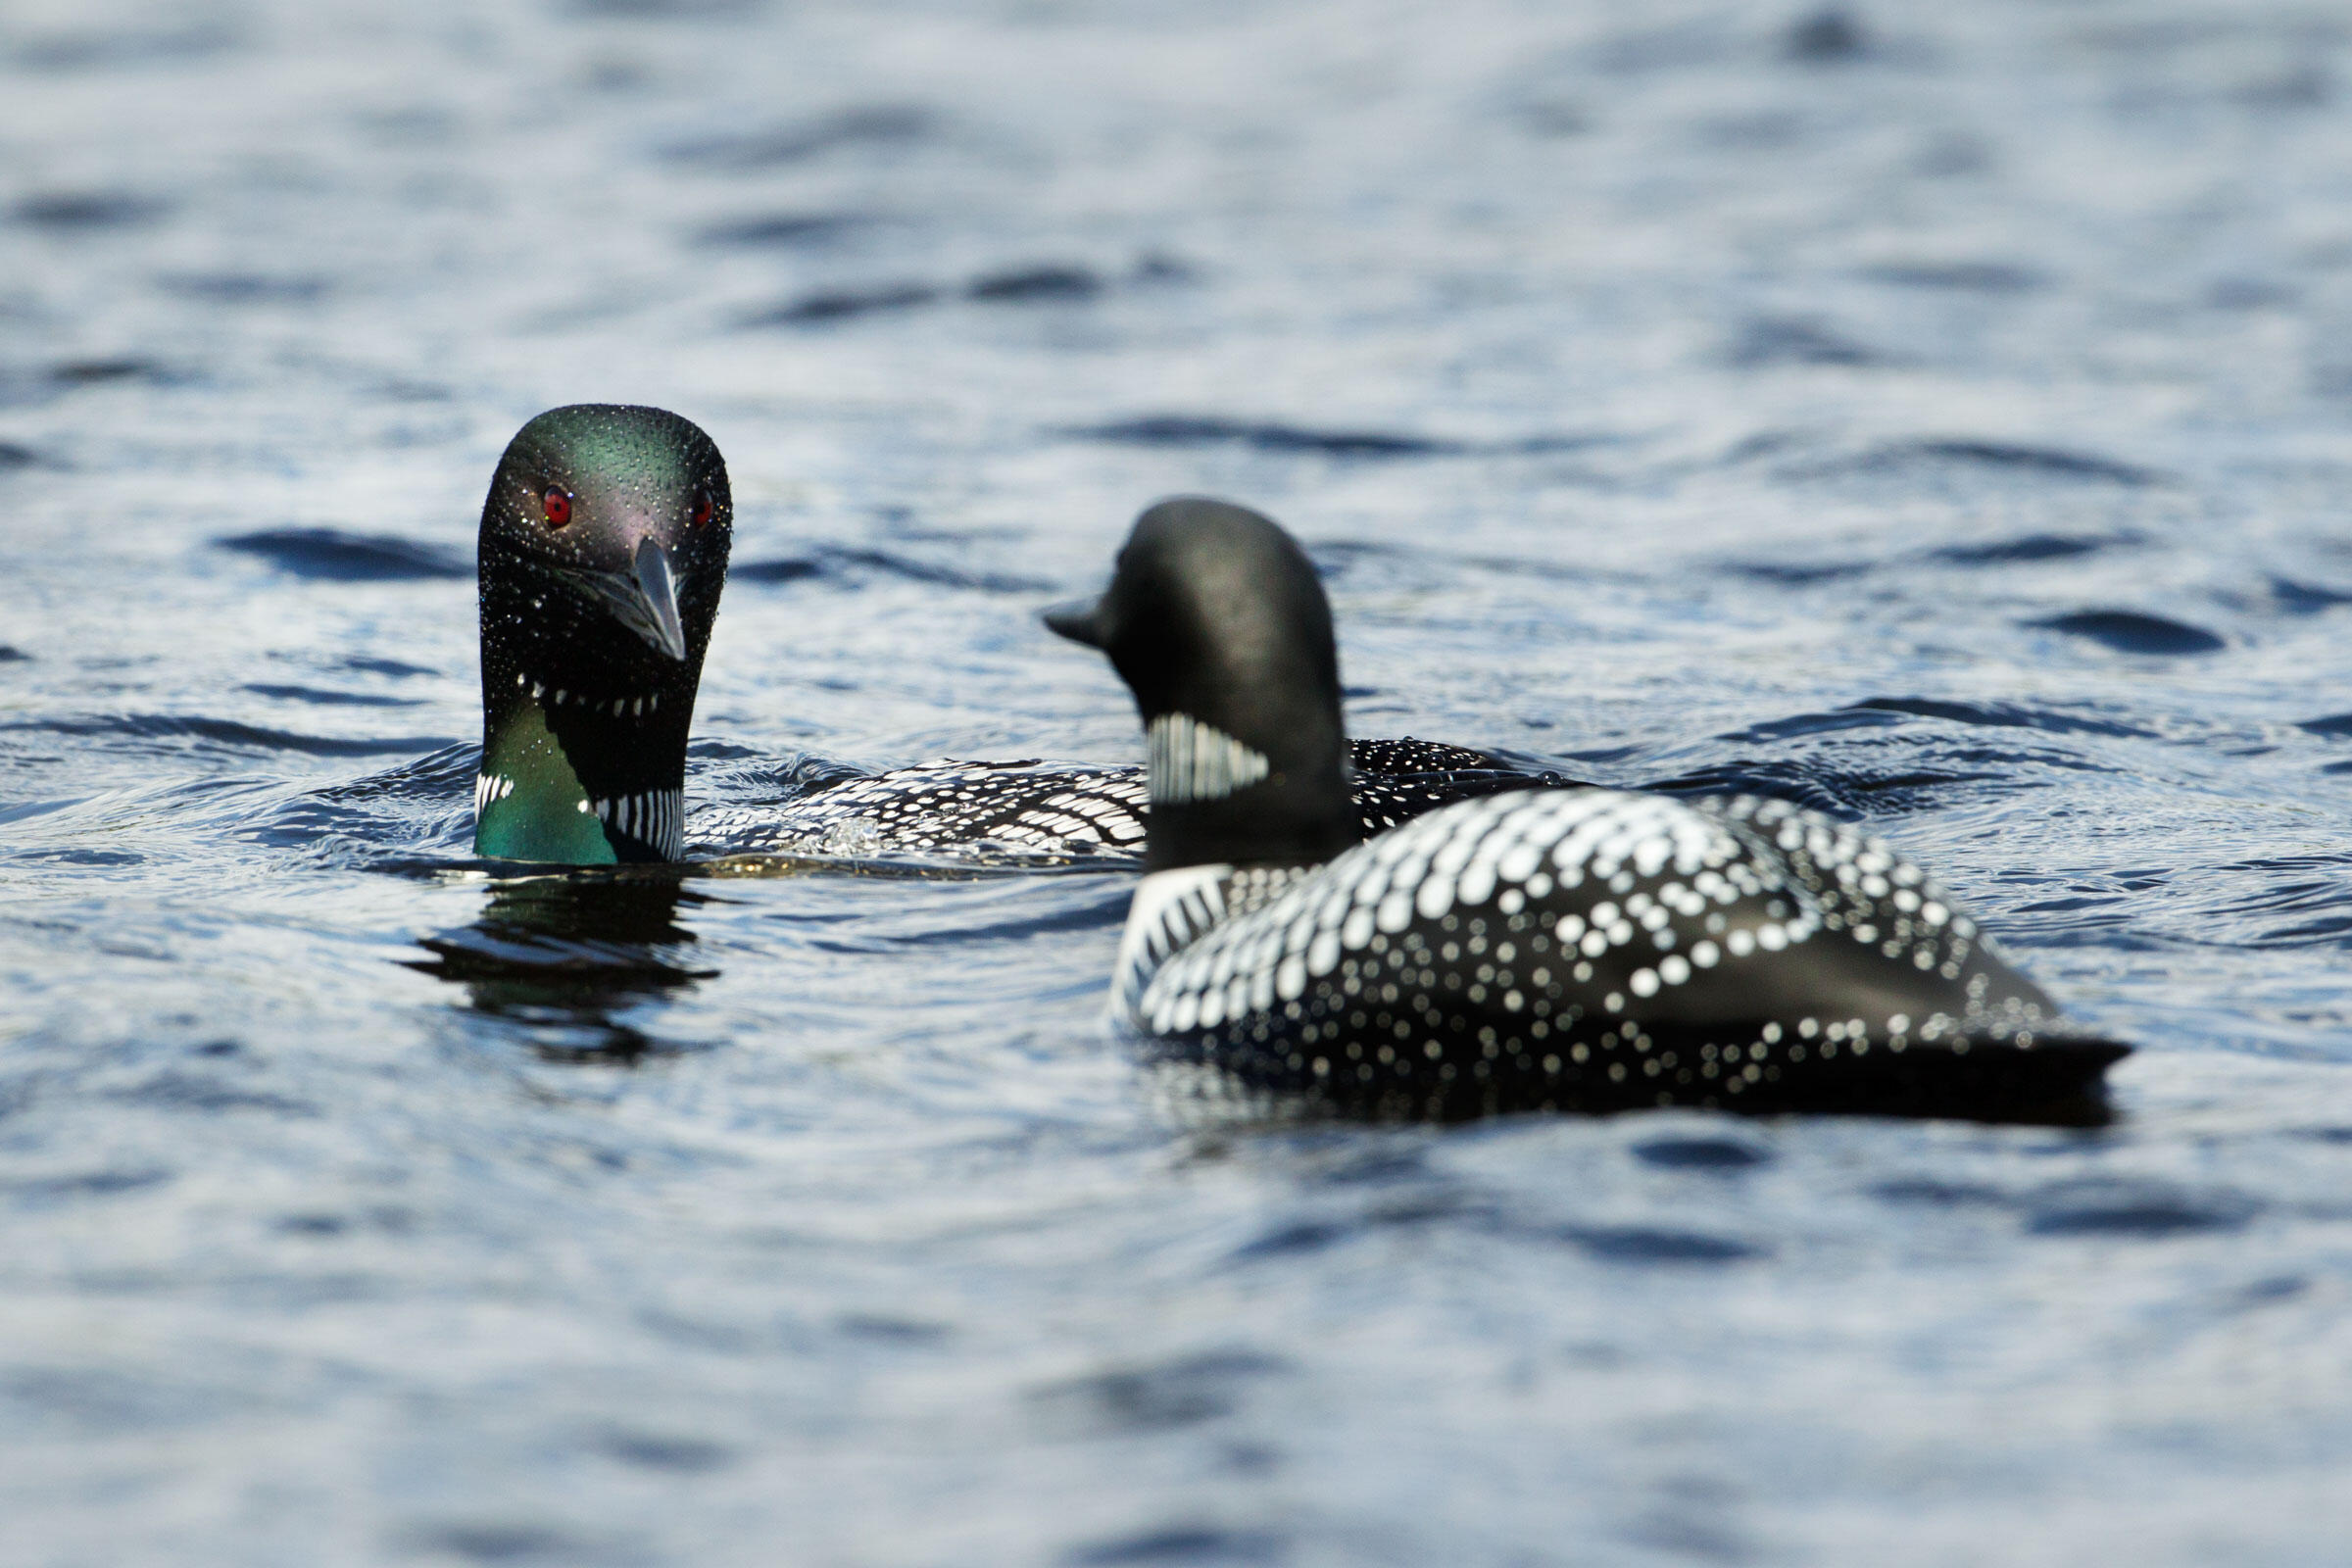 Two Loons_JF15. A loon approaches a decoy scientists are using to lure it into a trap. Photograph by Connor Stefanison